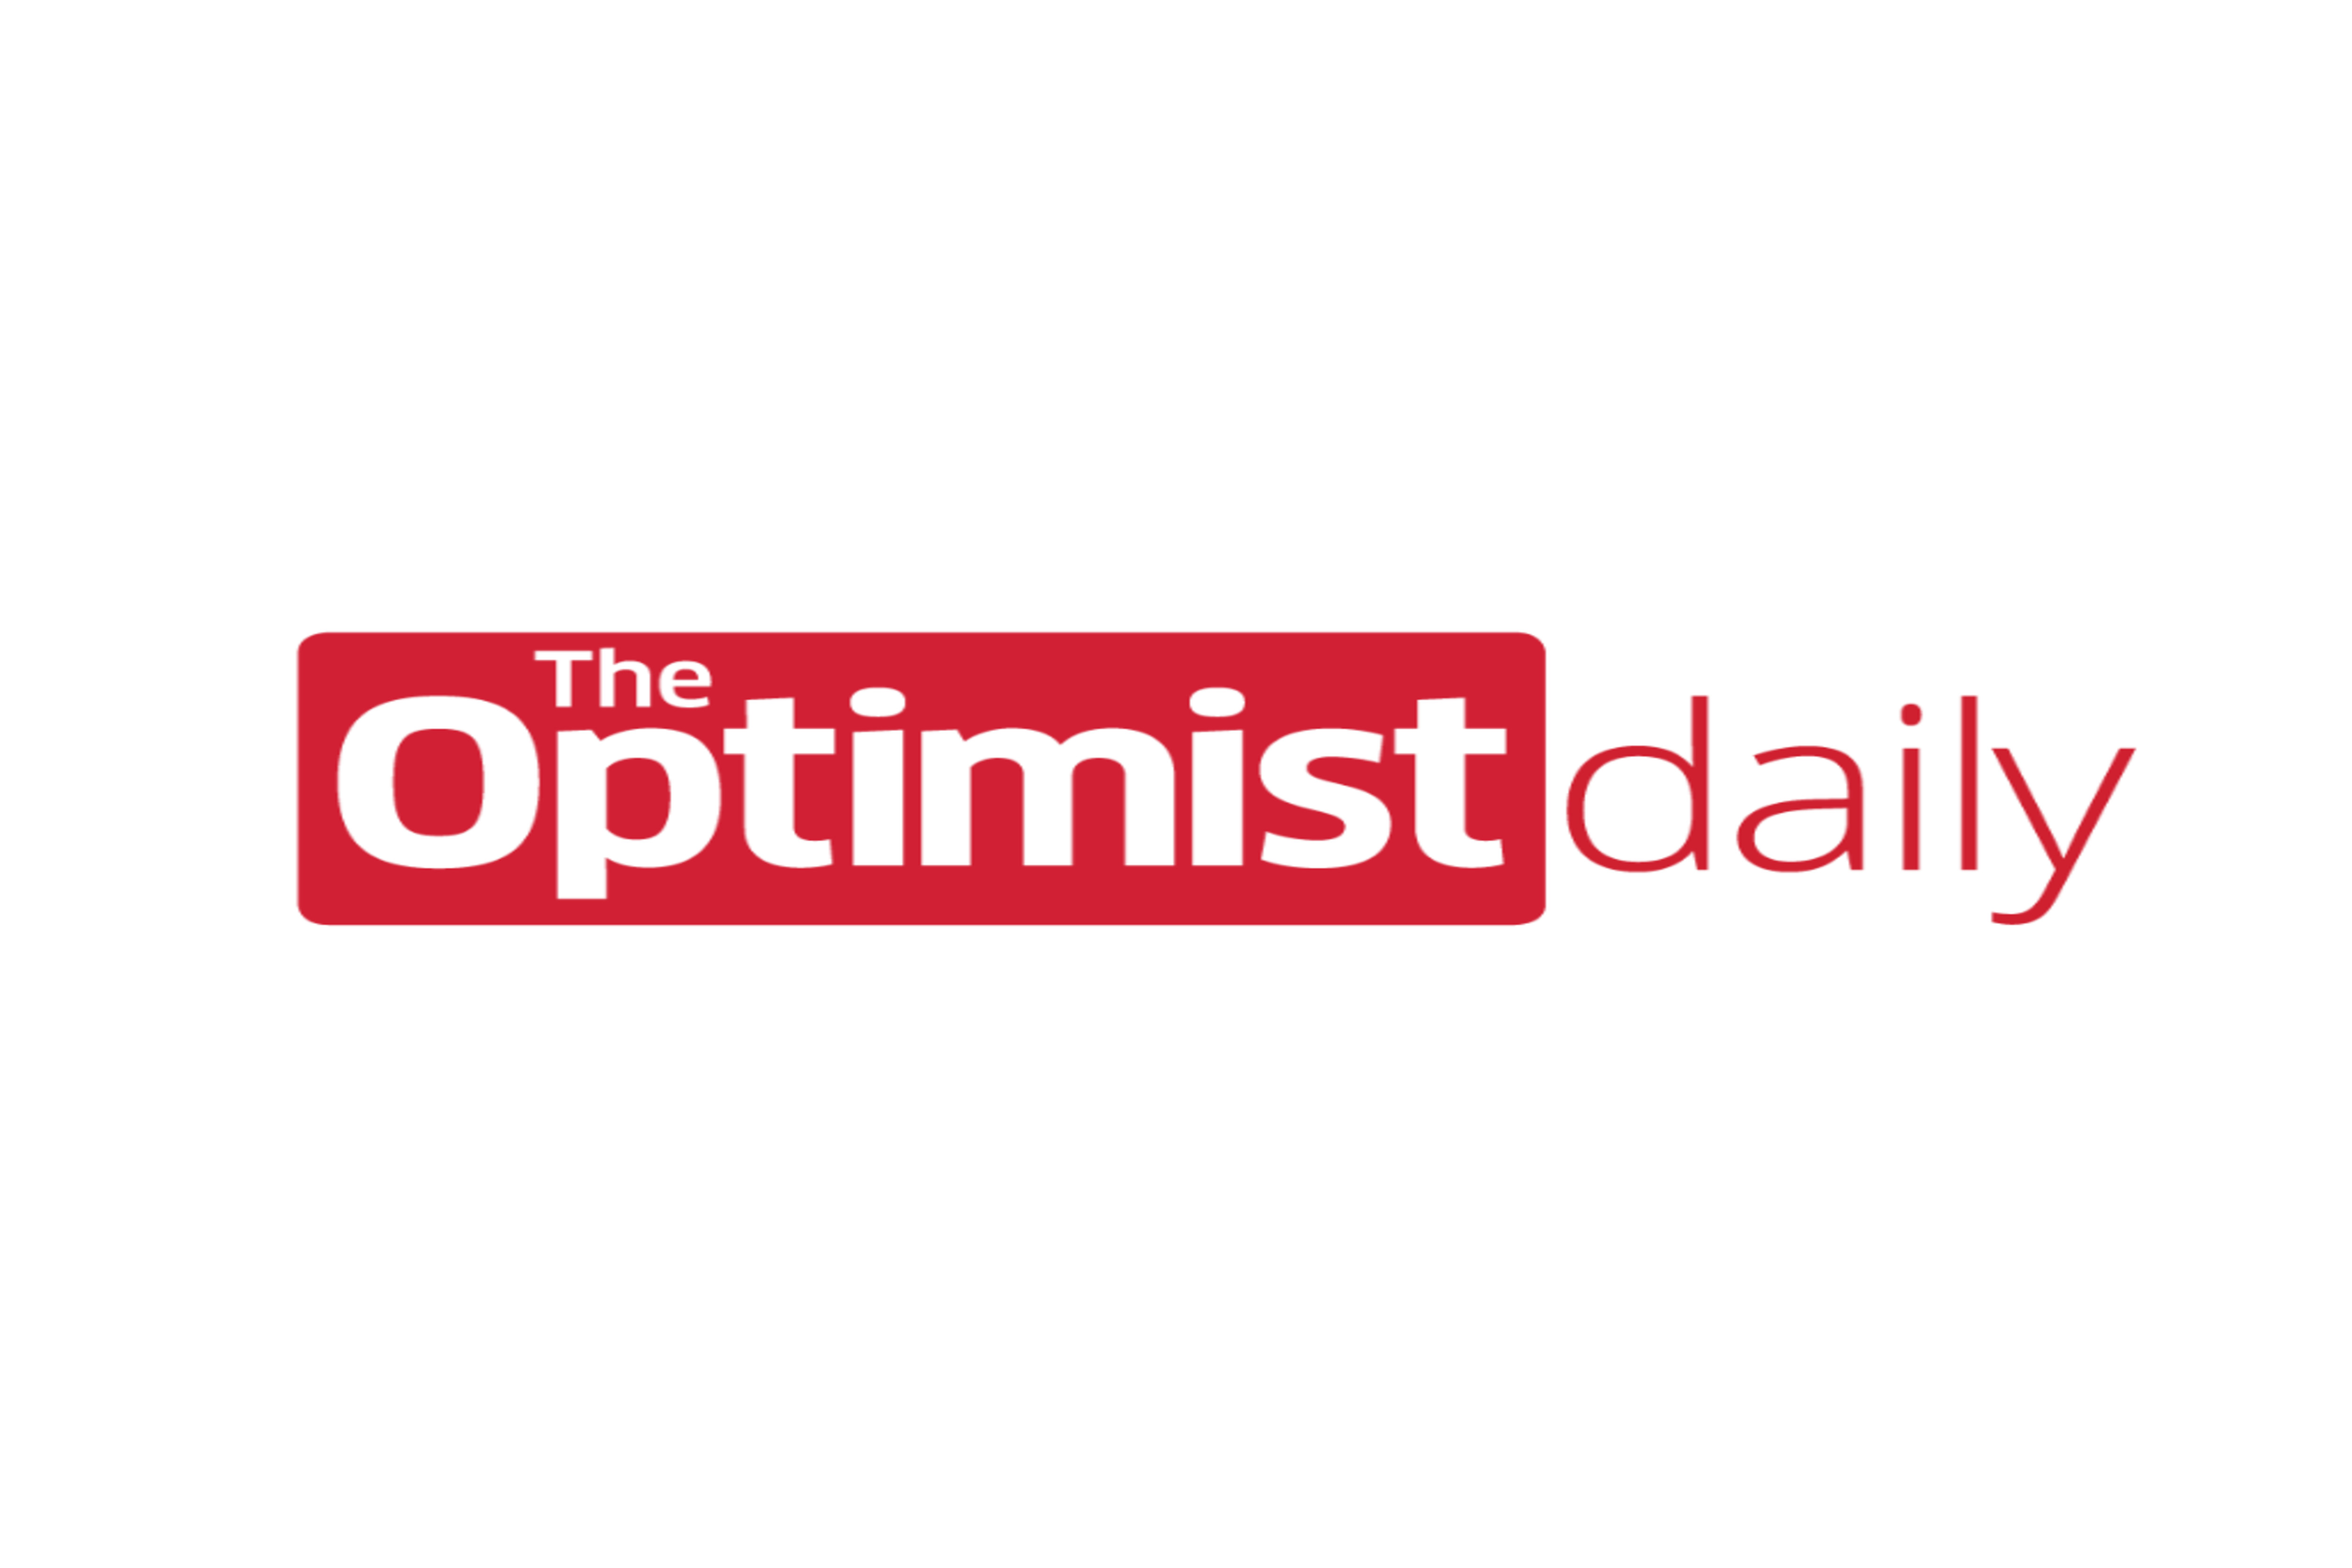 women protest megaphone social change anger prelude courage